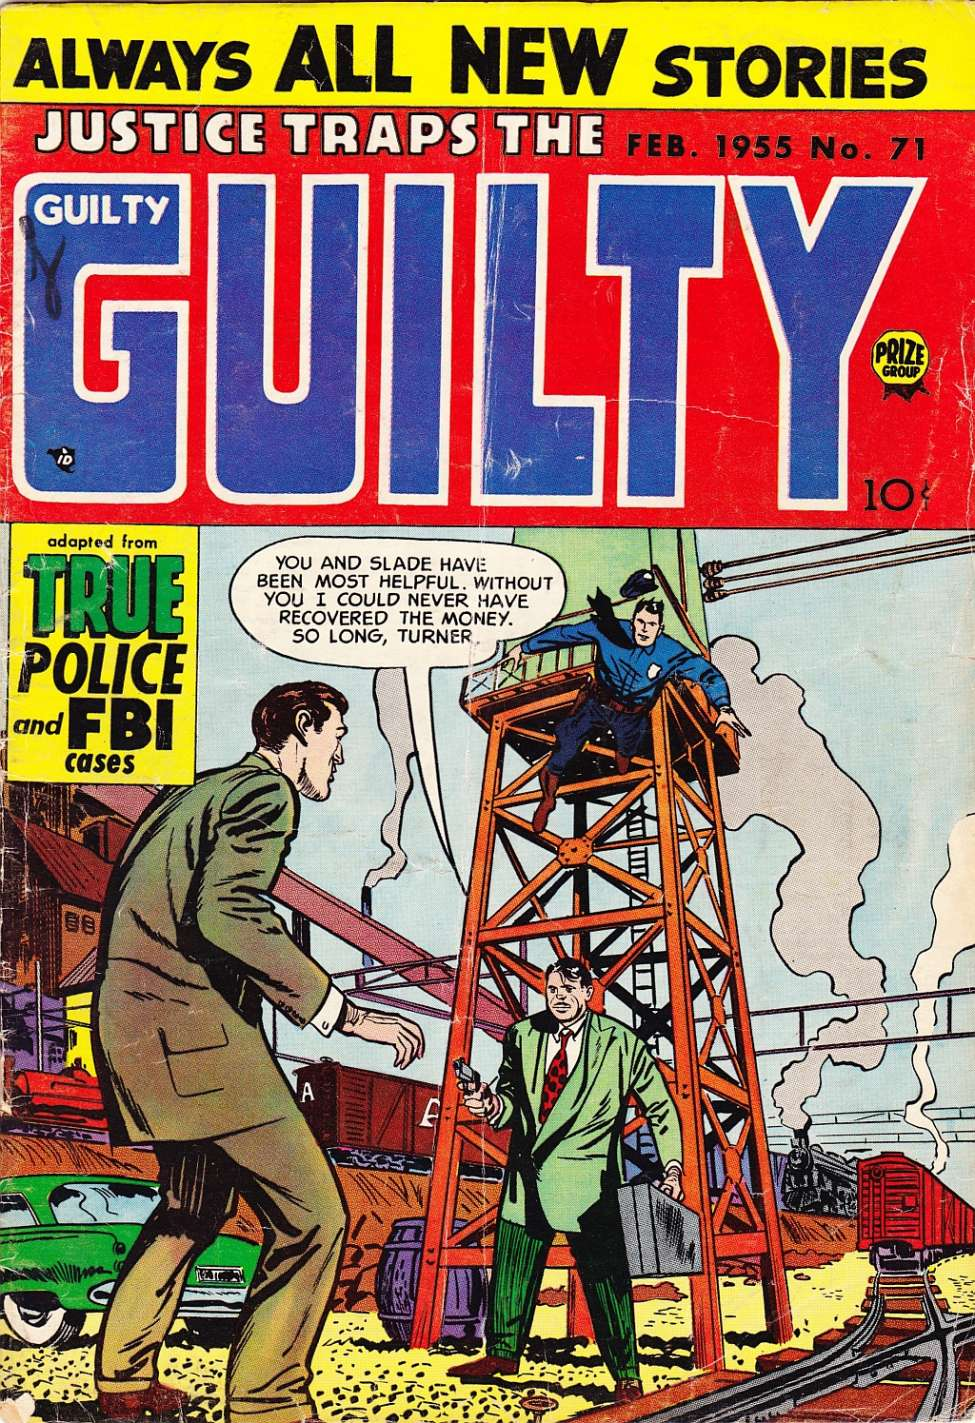 Comic Book Cover For Justice Traps the Guilty v8 5 (71)